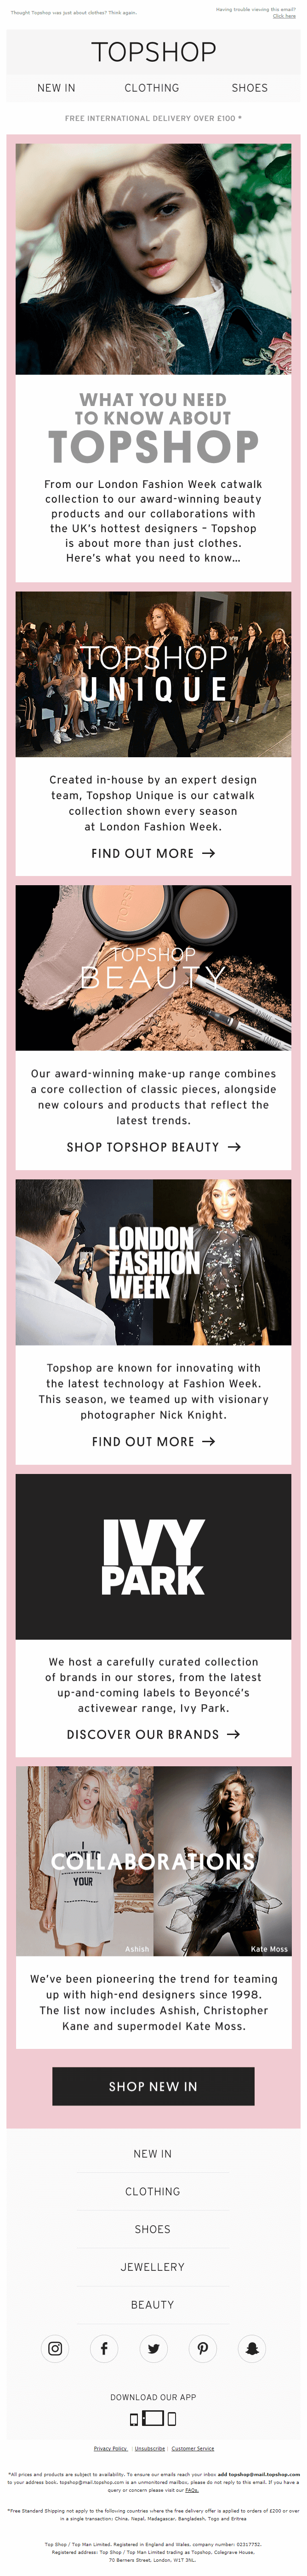 fourth email in the TopShop welcome email series